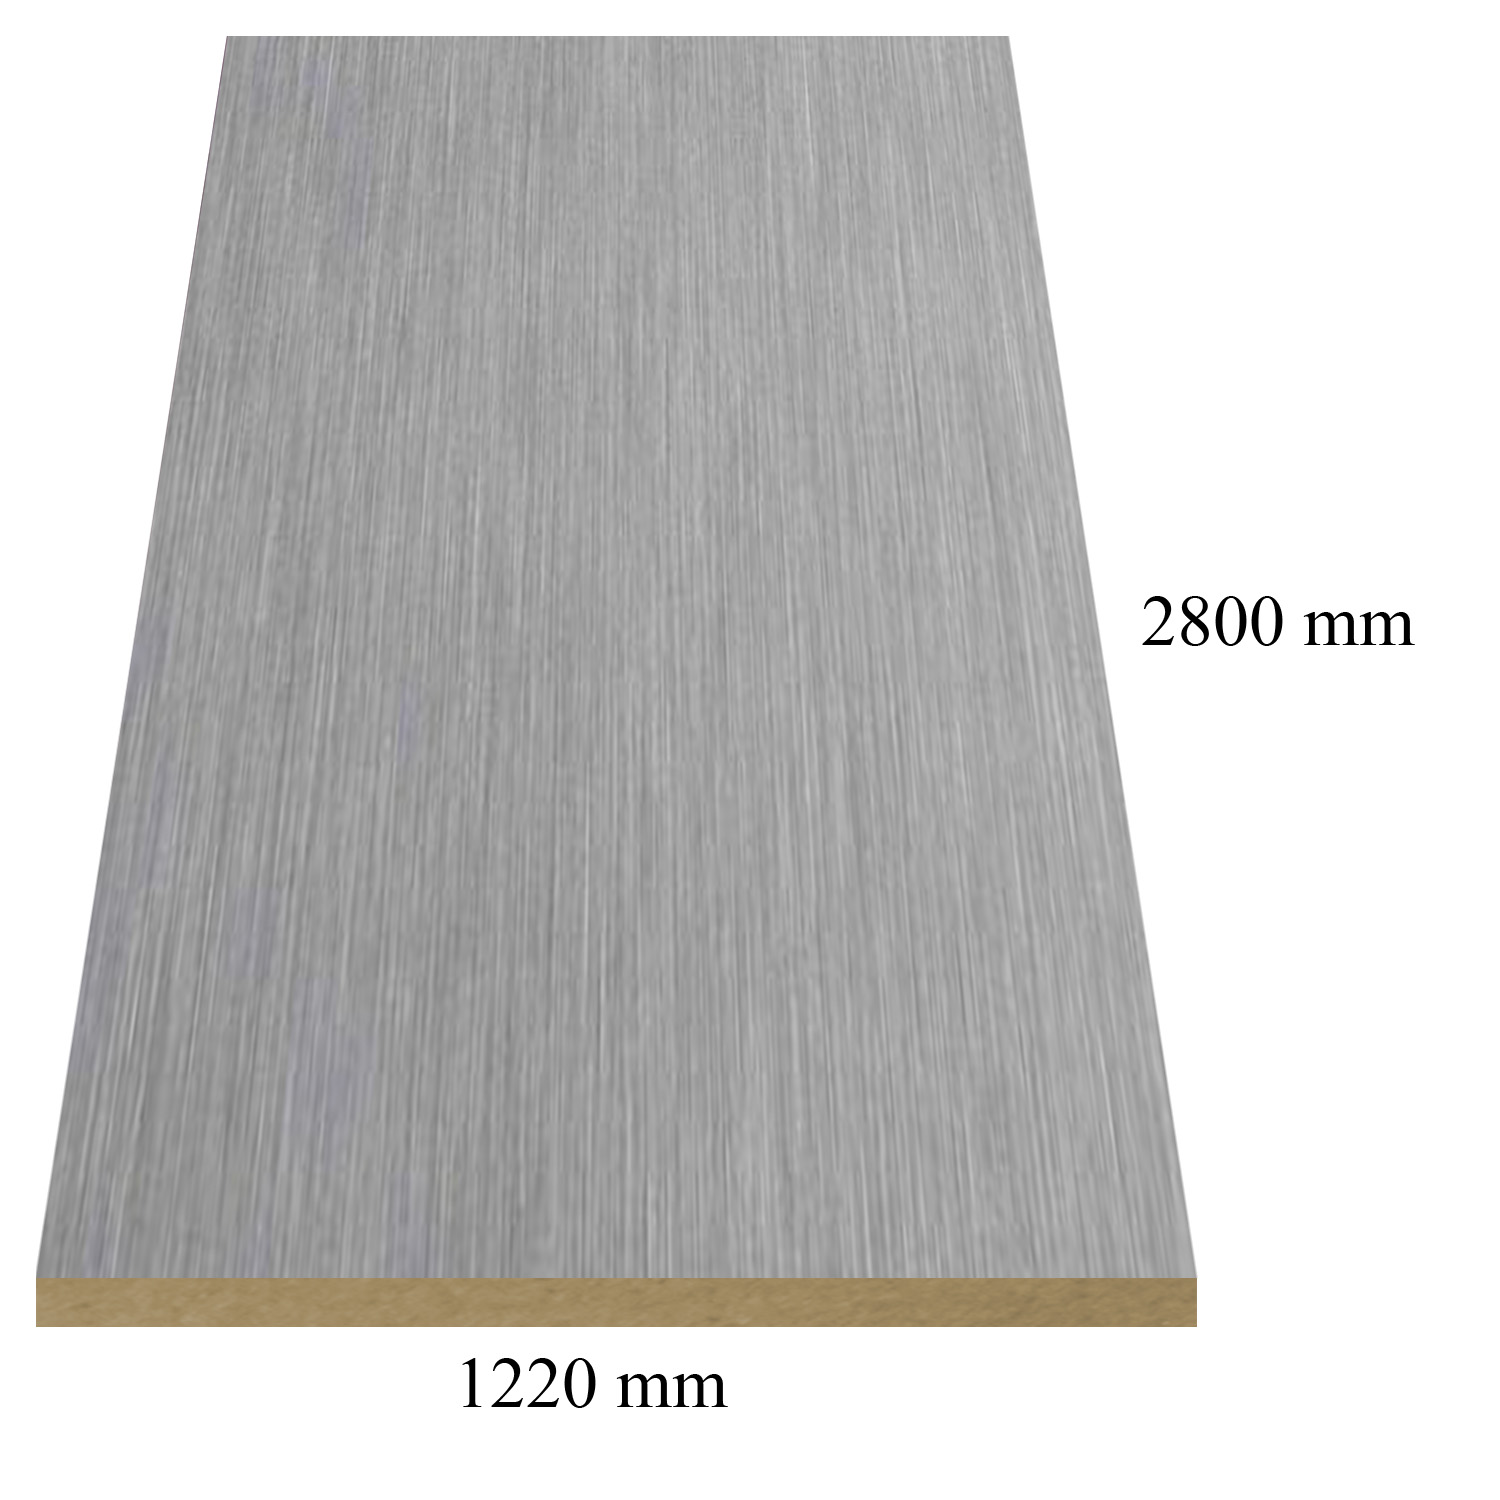 6170 Inox - PVC coated 18 mm MDF